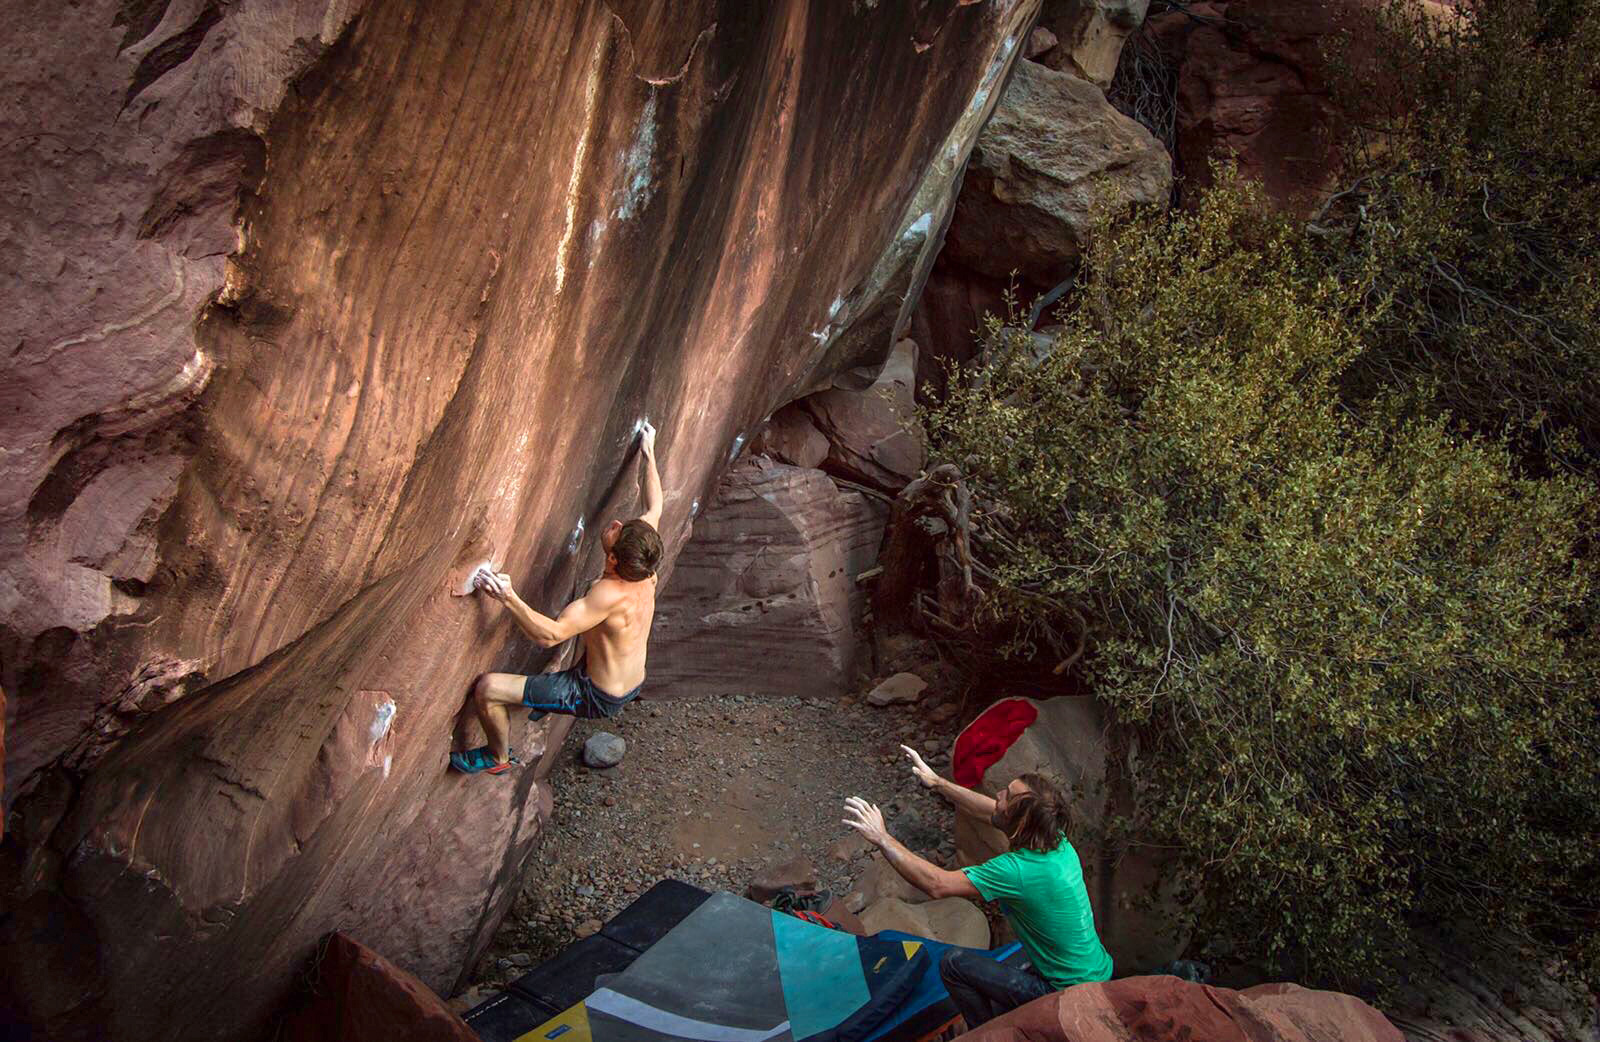 Chris Sharma spots Pol Roca on a boulder problem in Red Rocks, just outside of Las Vegas, NV. Photo: Ricardo Giancola.